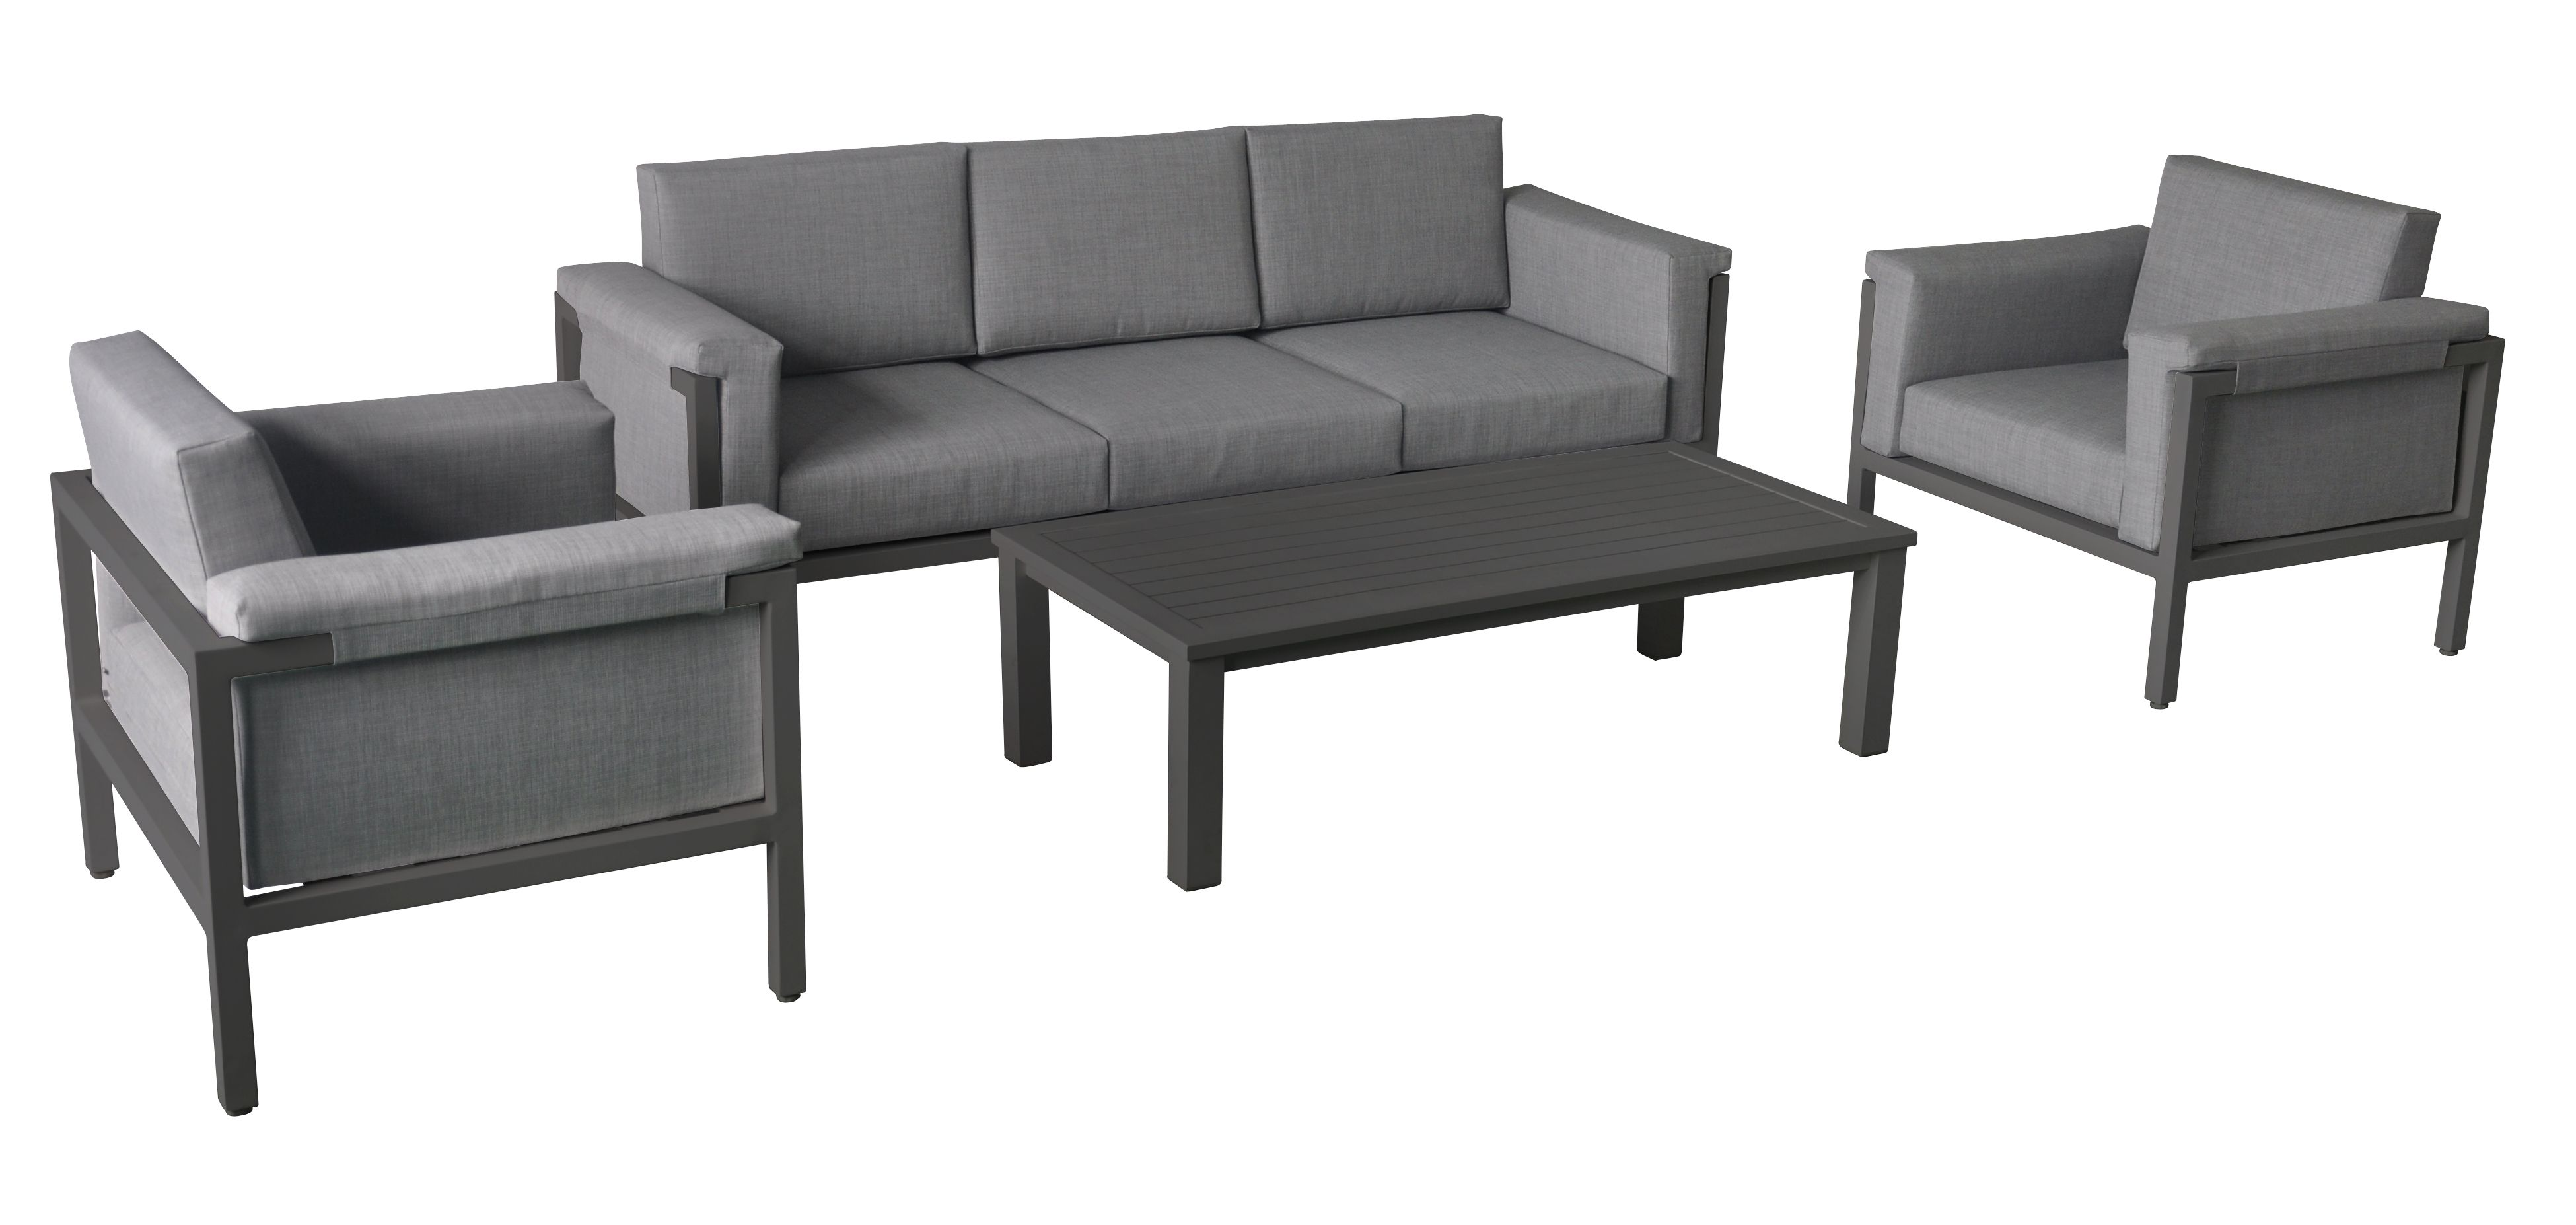 Many Patio Furniture Stores In Ontario Offer Outdoor Patio